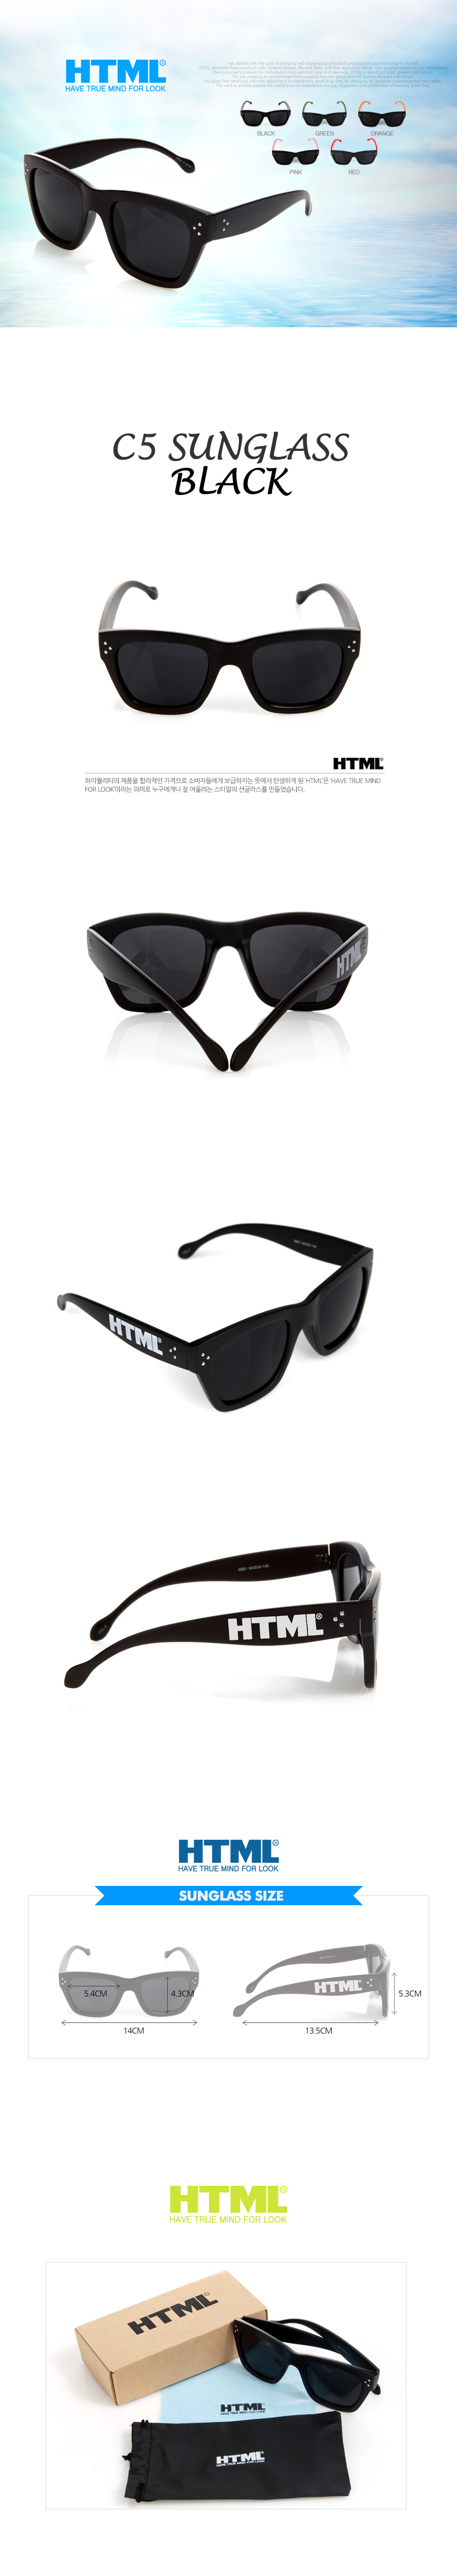 [에이치티엠엘] HTML - C5 sunglass (Black)